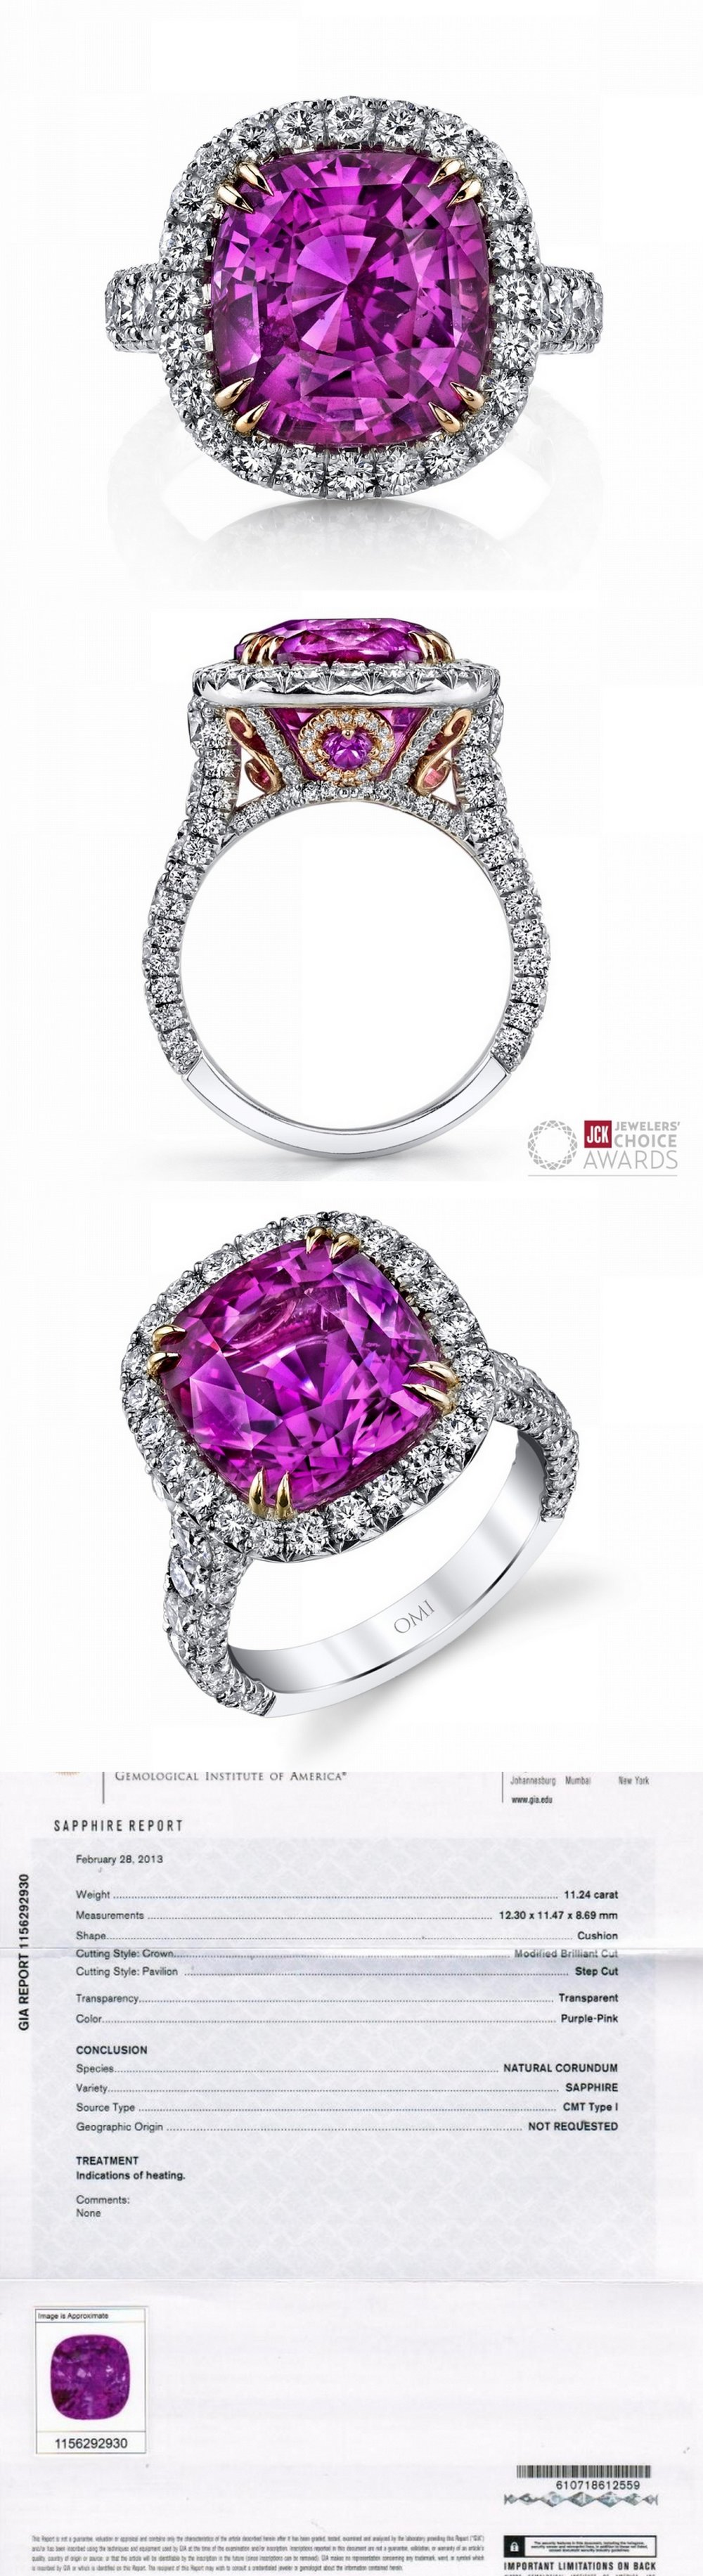 11.24CT Award Winning Pink Sapphire and Diamond Ring